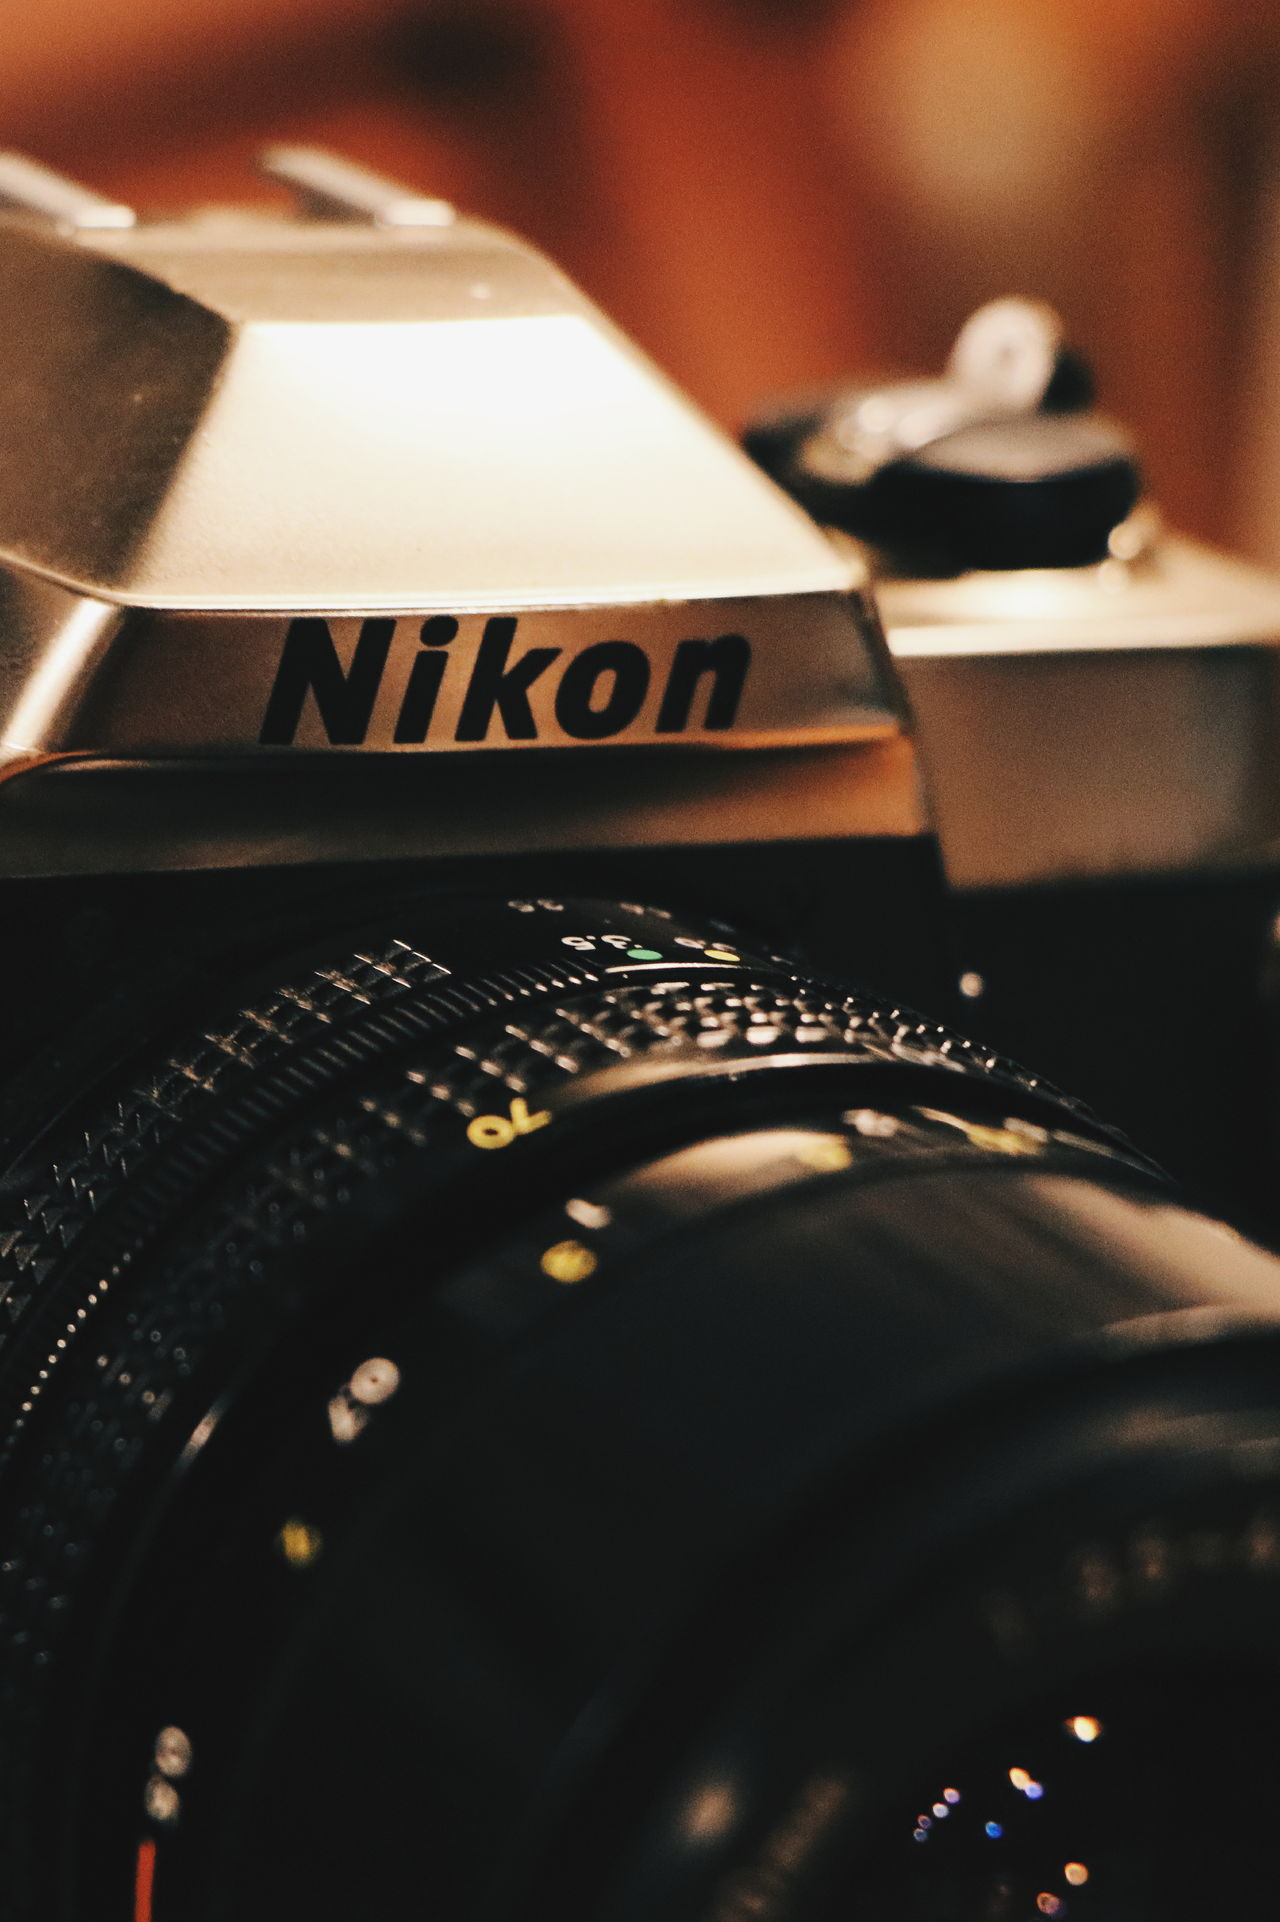 Nikon analog Music Close-up No People Indoors  Musical Instrument Piano Day EyeEm Indonesia Focus On Foreground Indonesia_photography Nikonphotography Nikon Close Up Technology